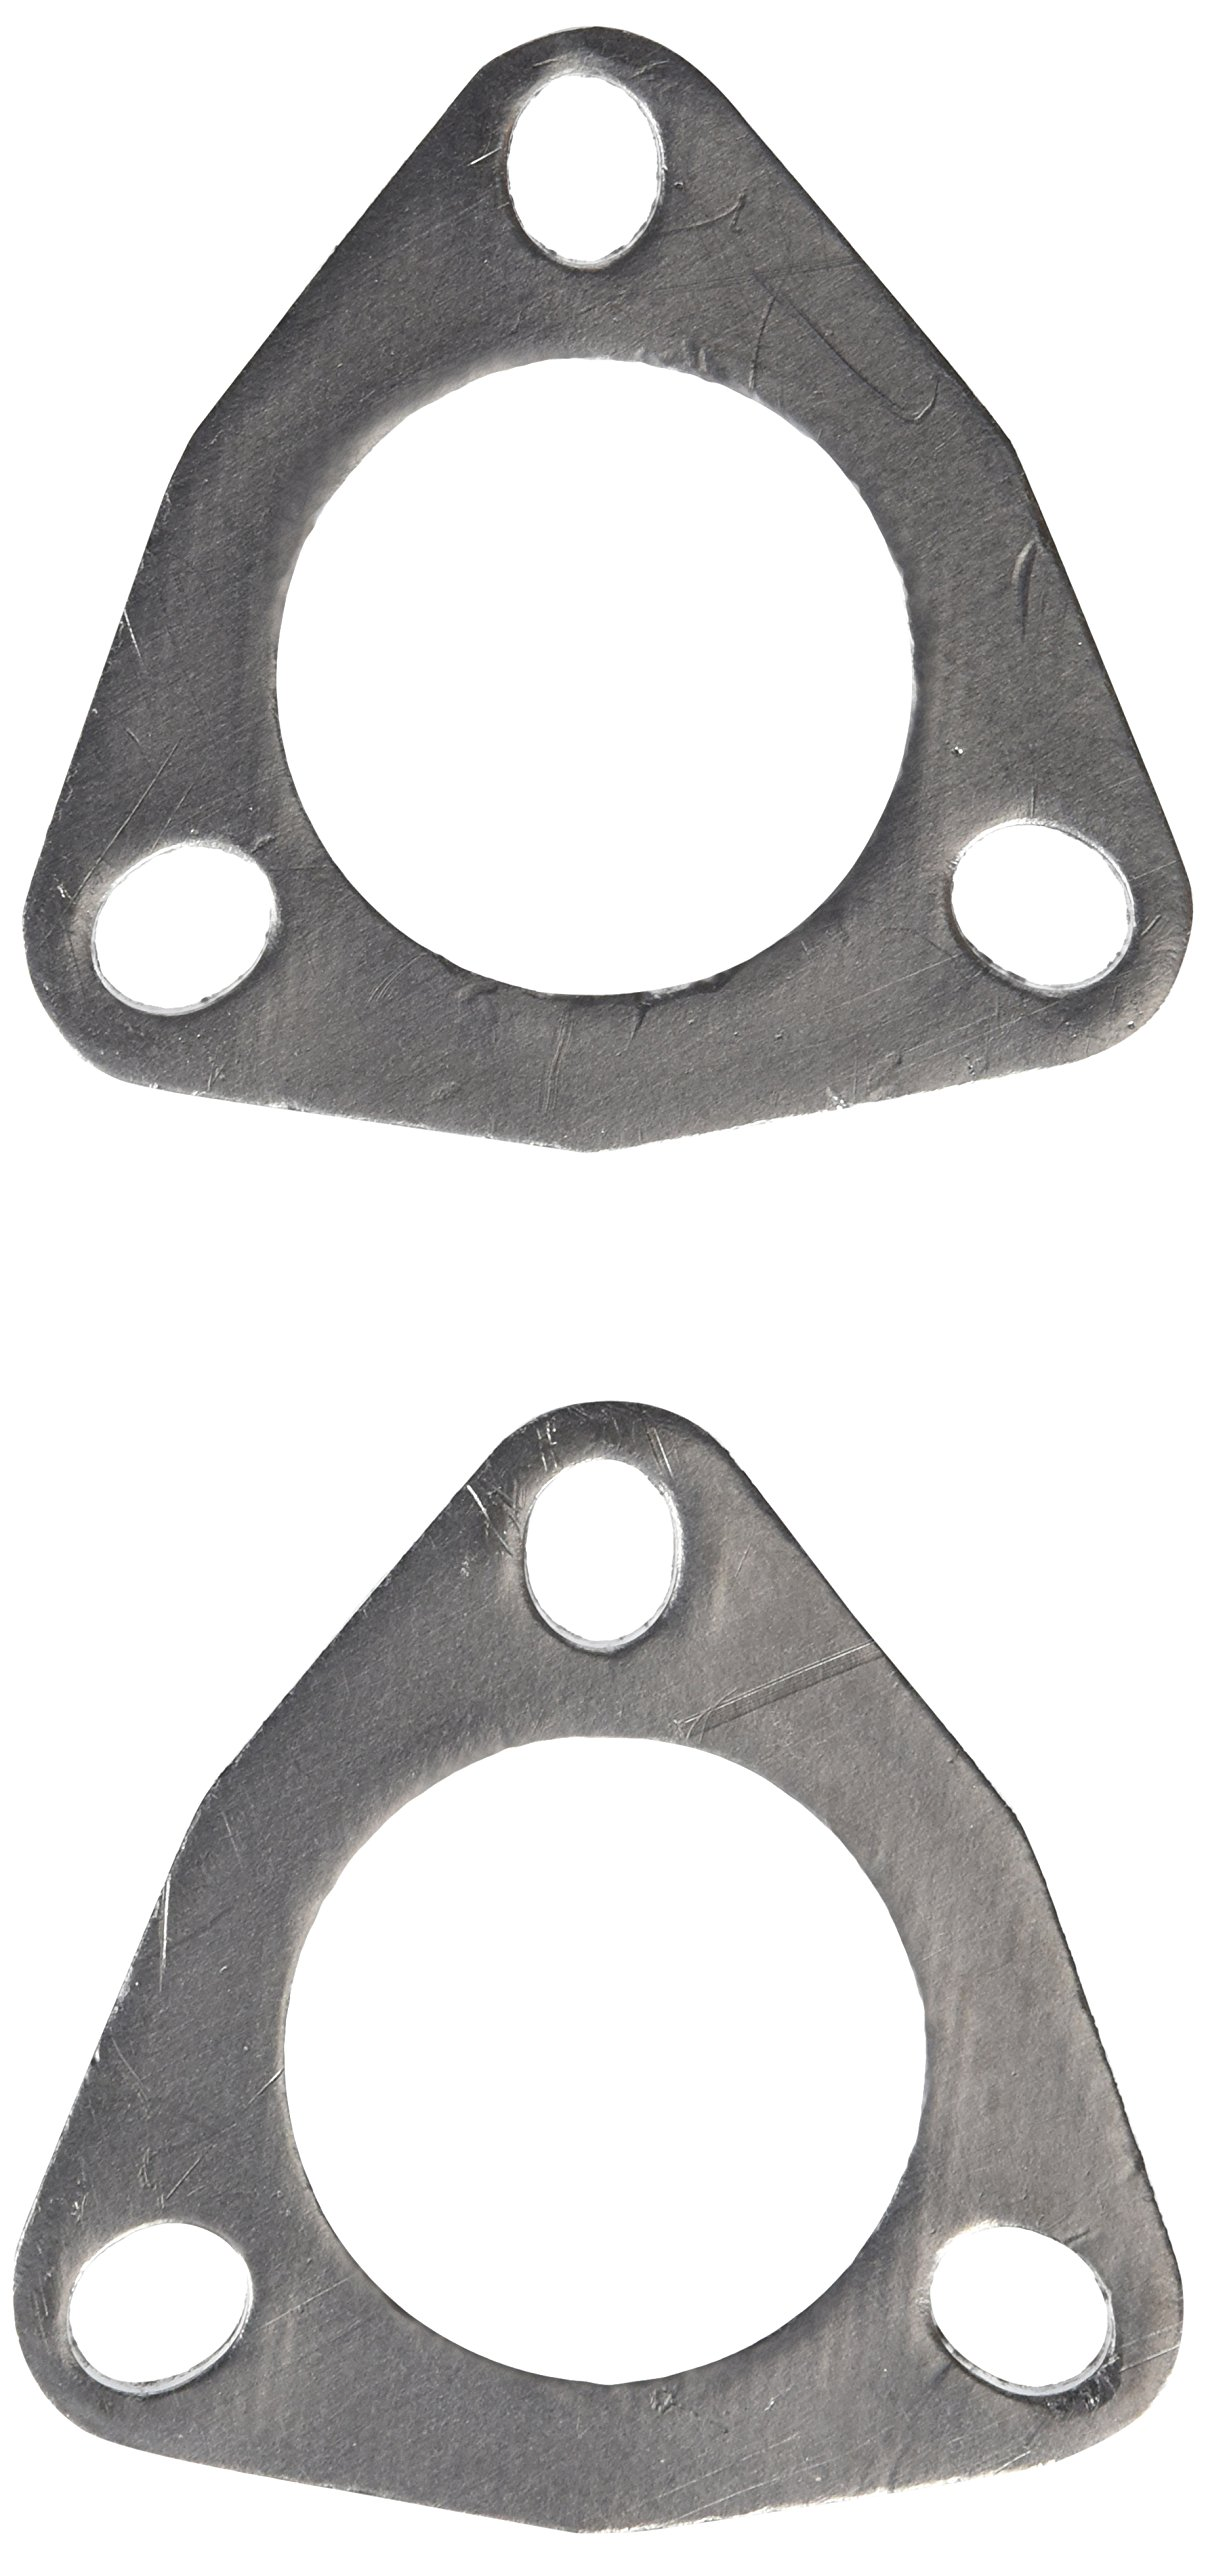 Remflex (8008) 2'' 3-Bolt Universal Exhaust Gasket, (Set of 2)